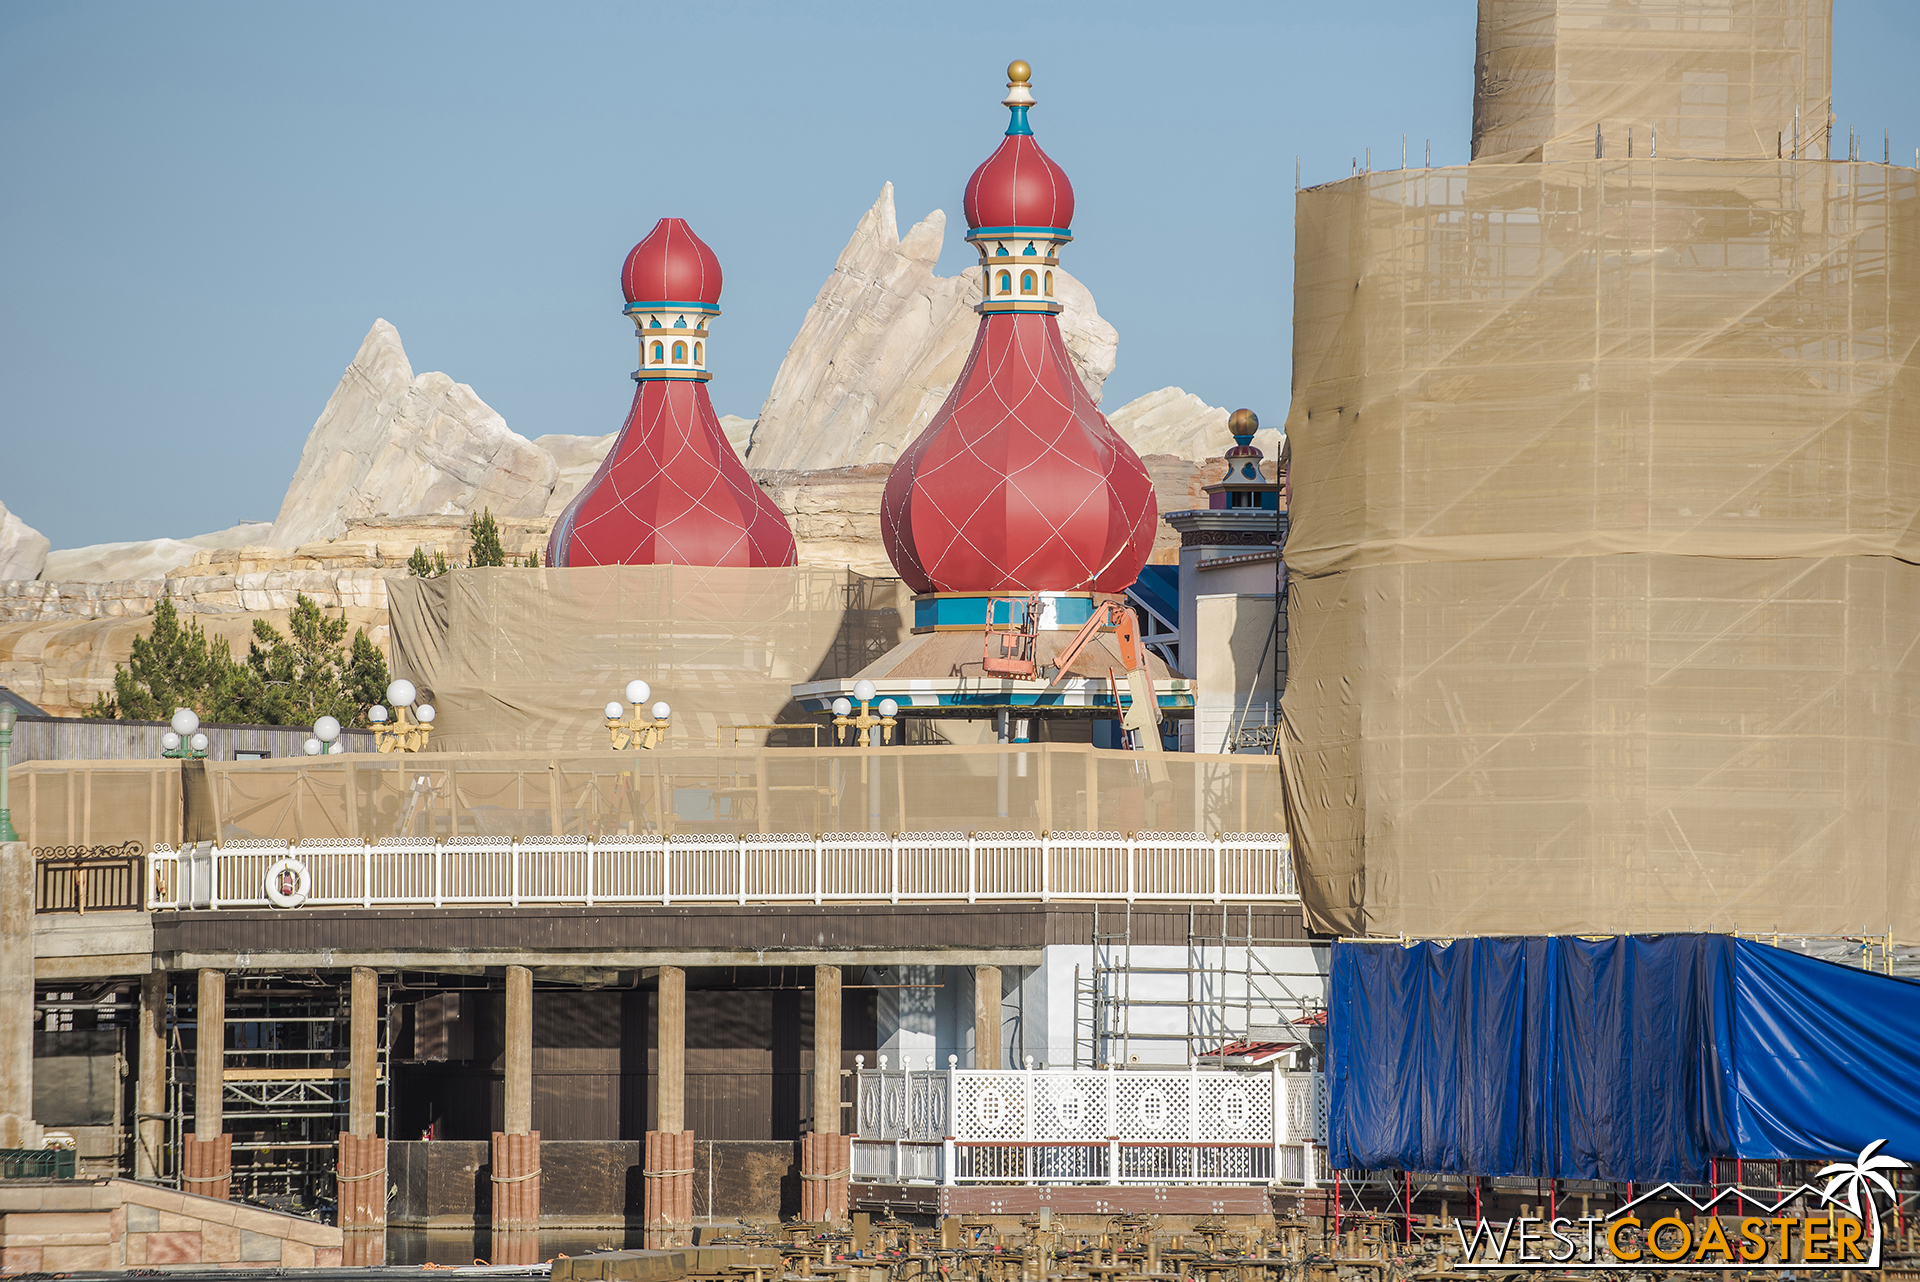 The bulbous roof spires look fantastical but neat.